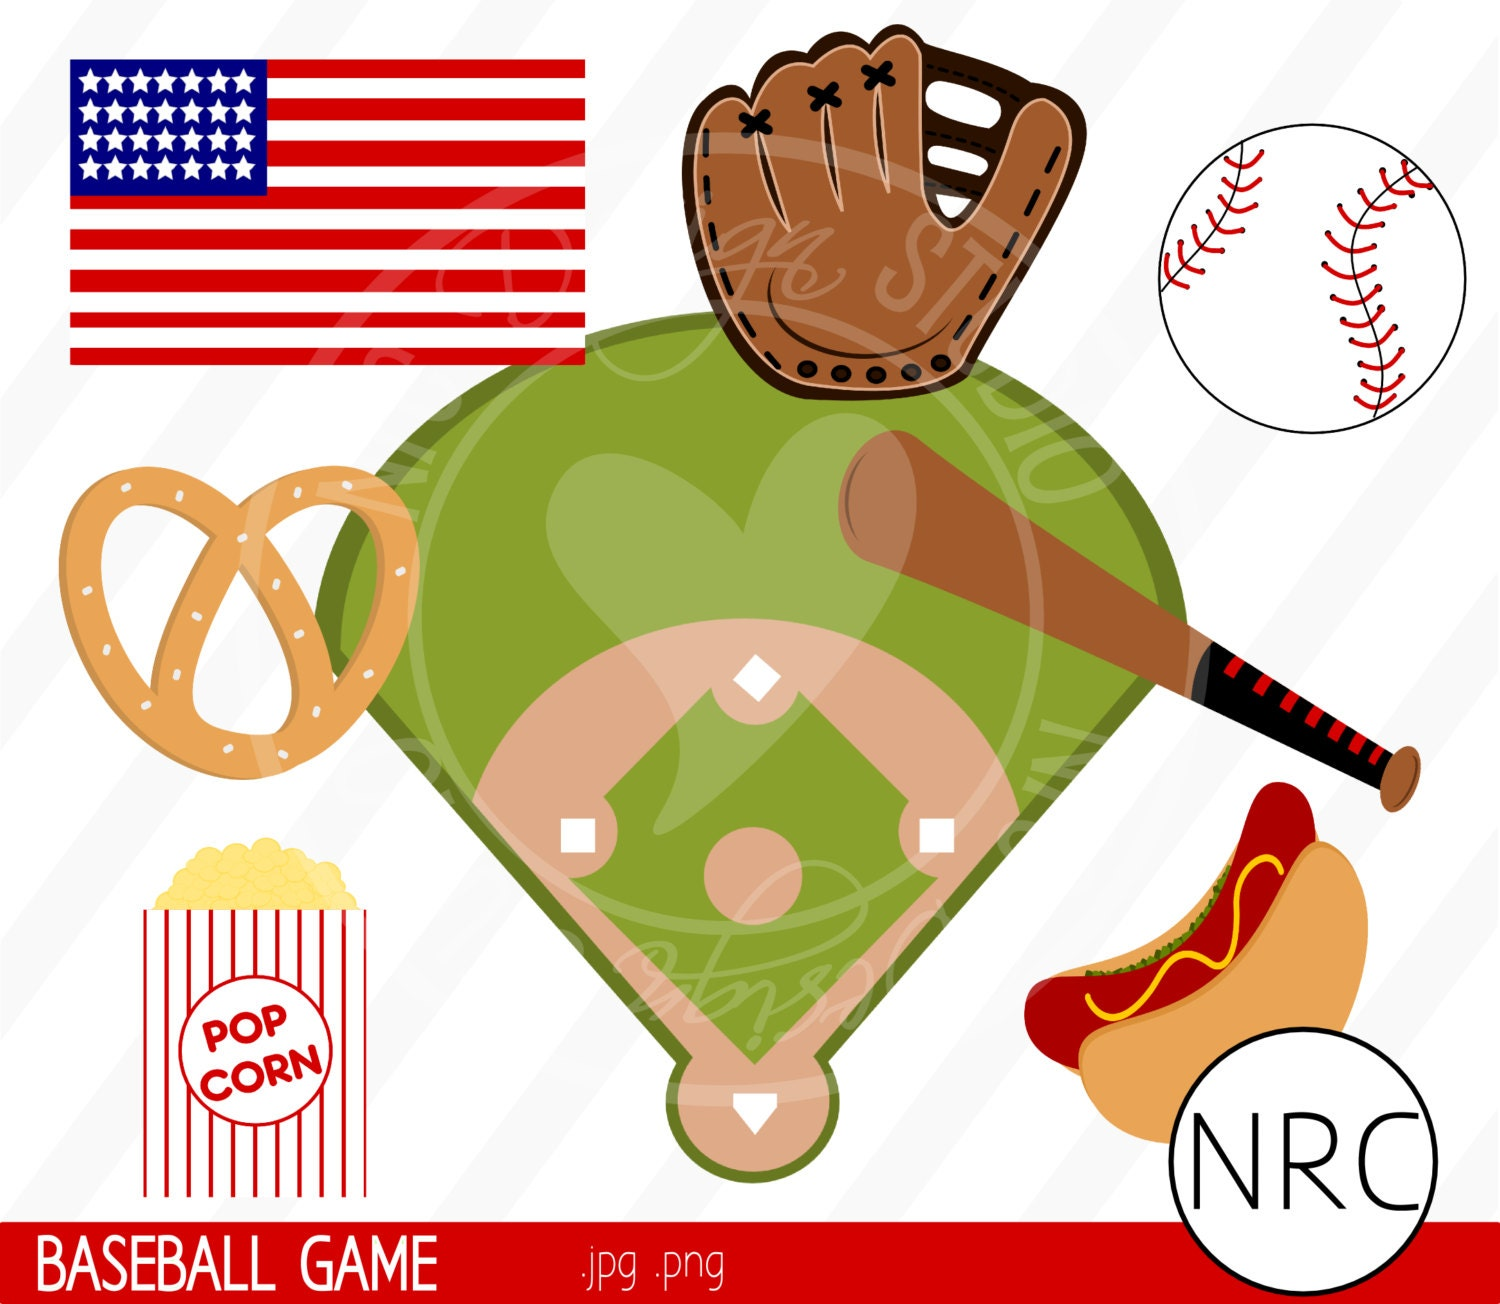 Baseball Game Sports Clip Art Boy Pretzel by NRCDesignStudio